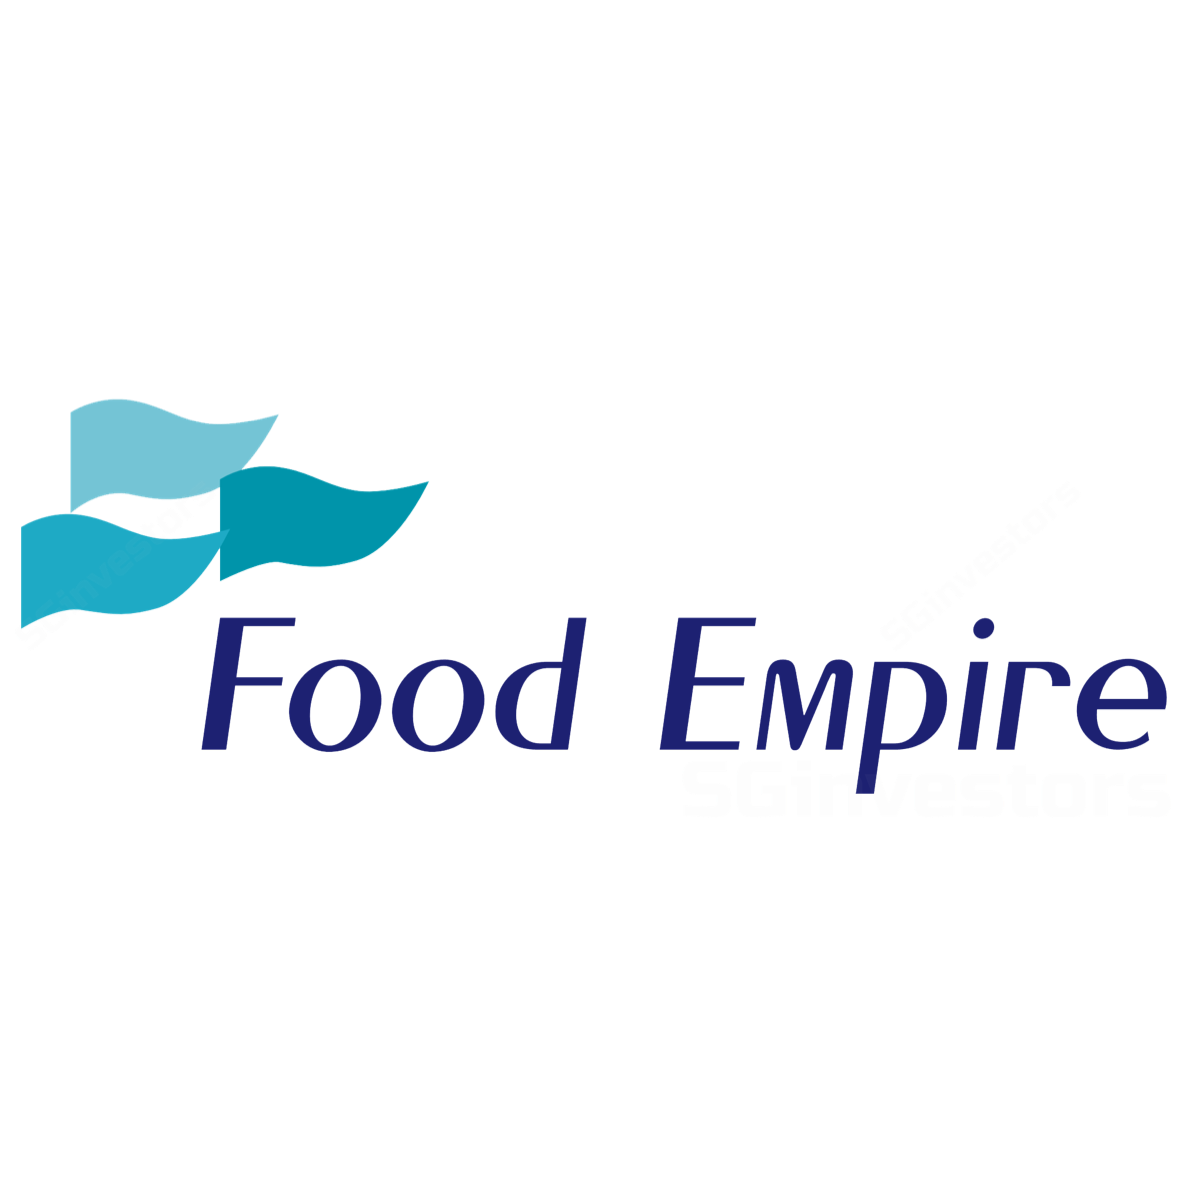 Food Empire Holdings (FEH SP) - UOB Kay Hian 2017-03-02: 2016 Full Turnaround Achieved; Back To Paying Dividends